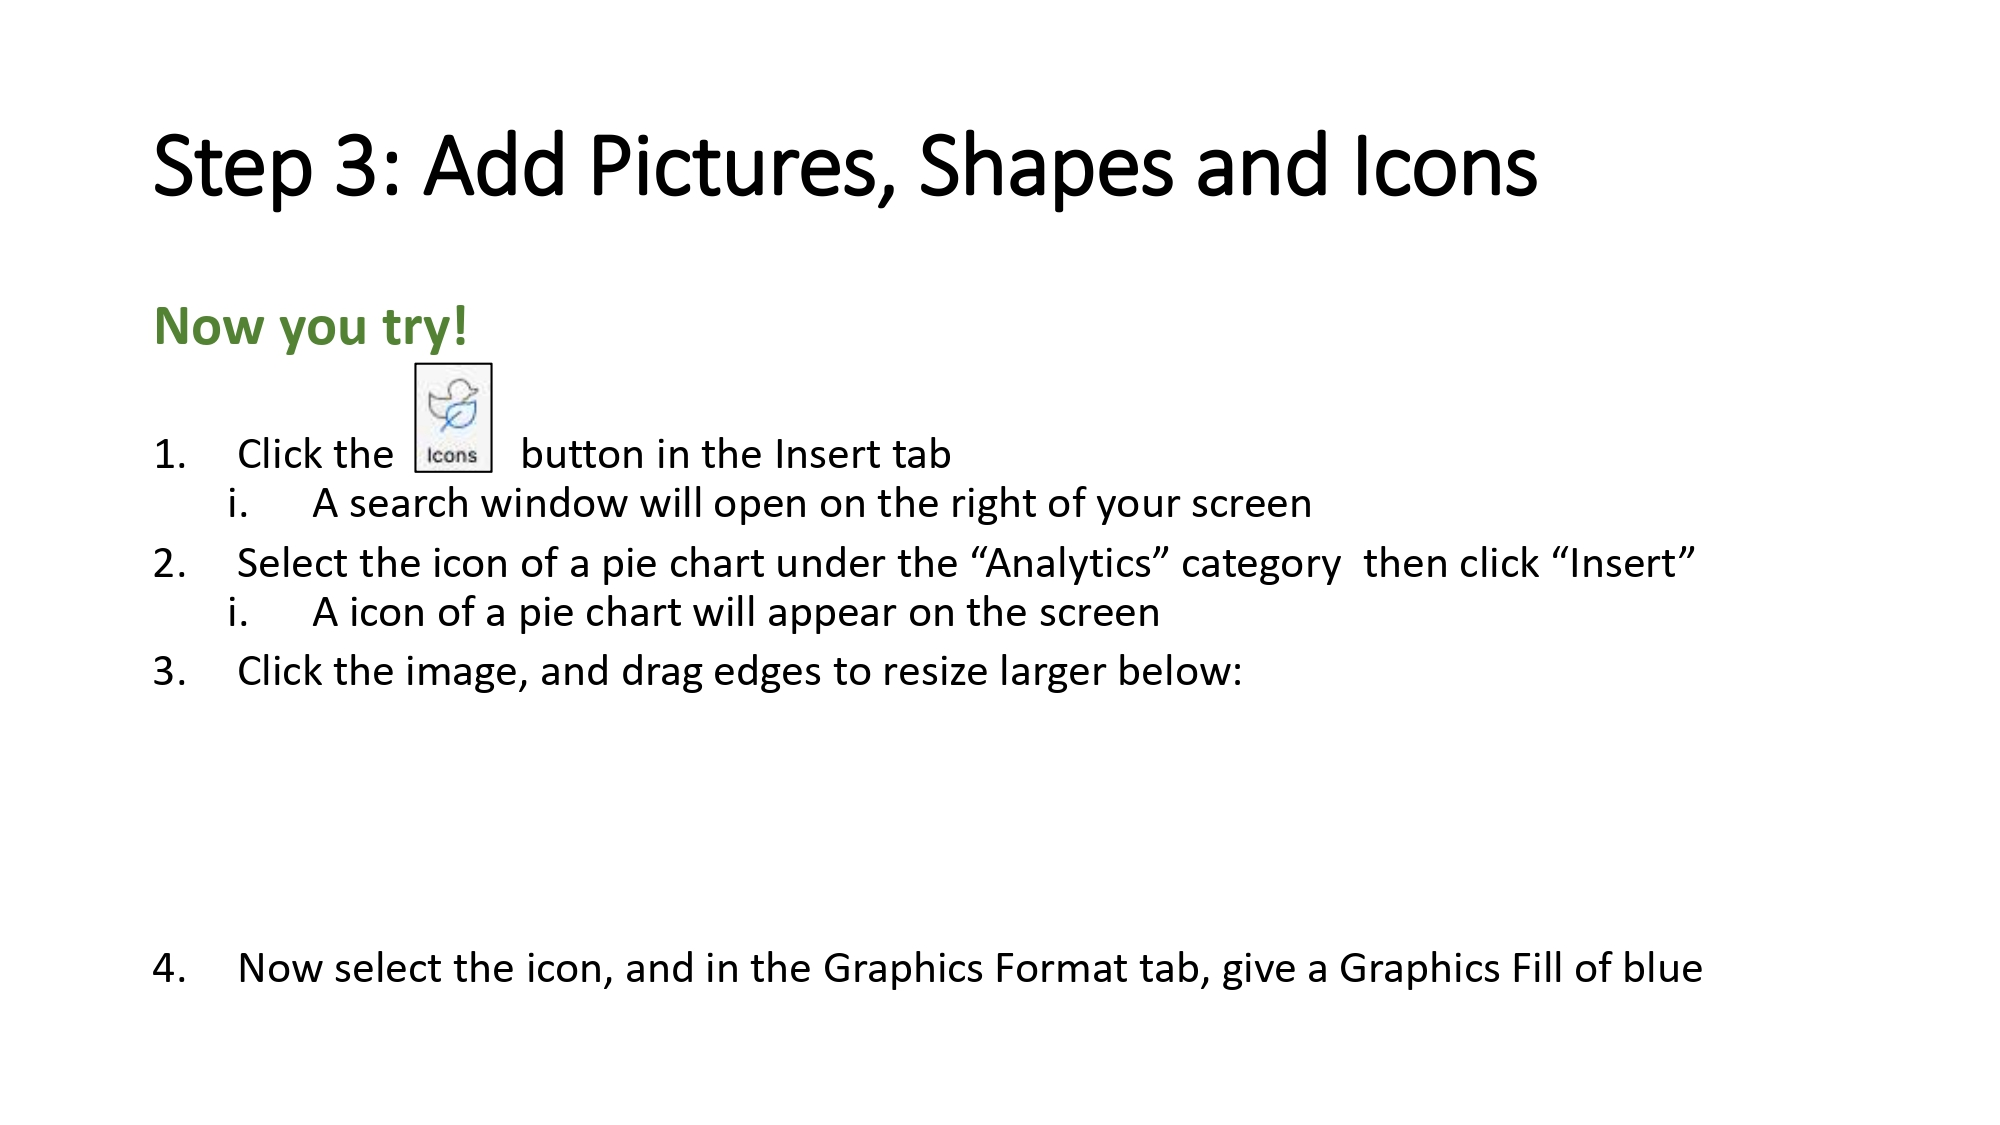 Guide to Creating a Simple PowerPoint_compressed (1)_page-0018